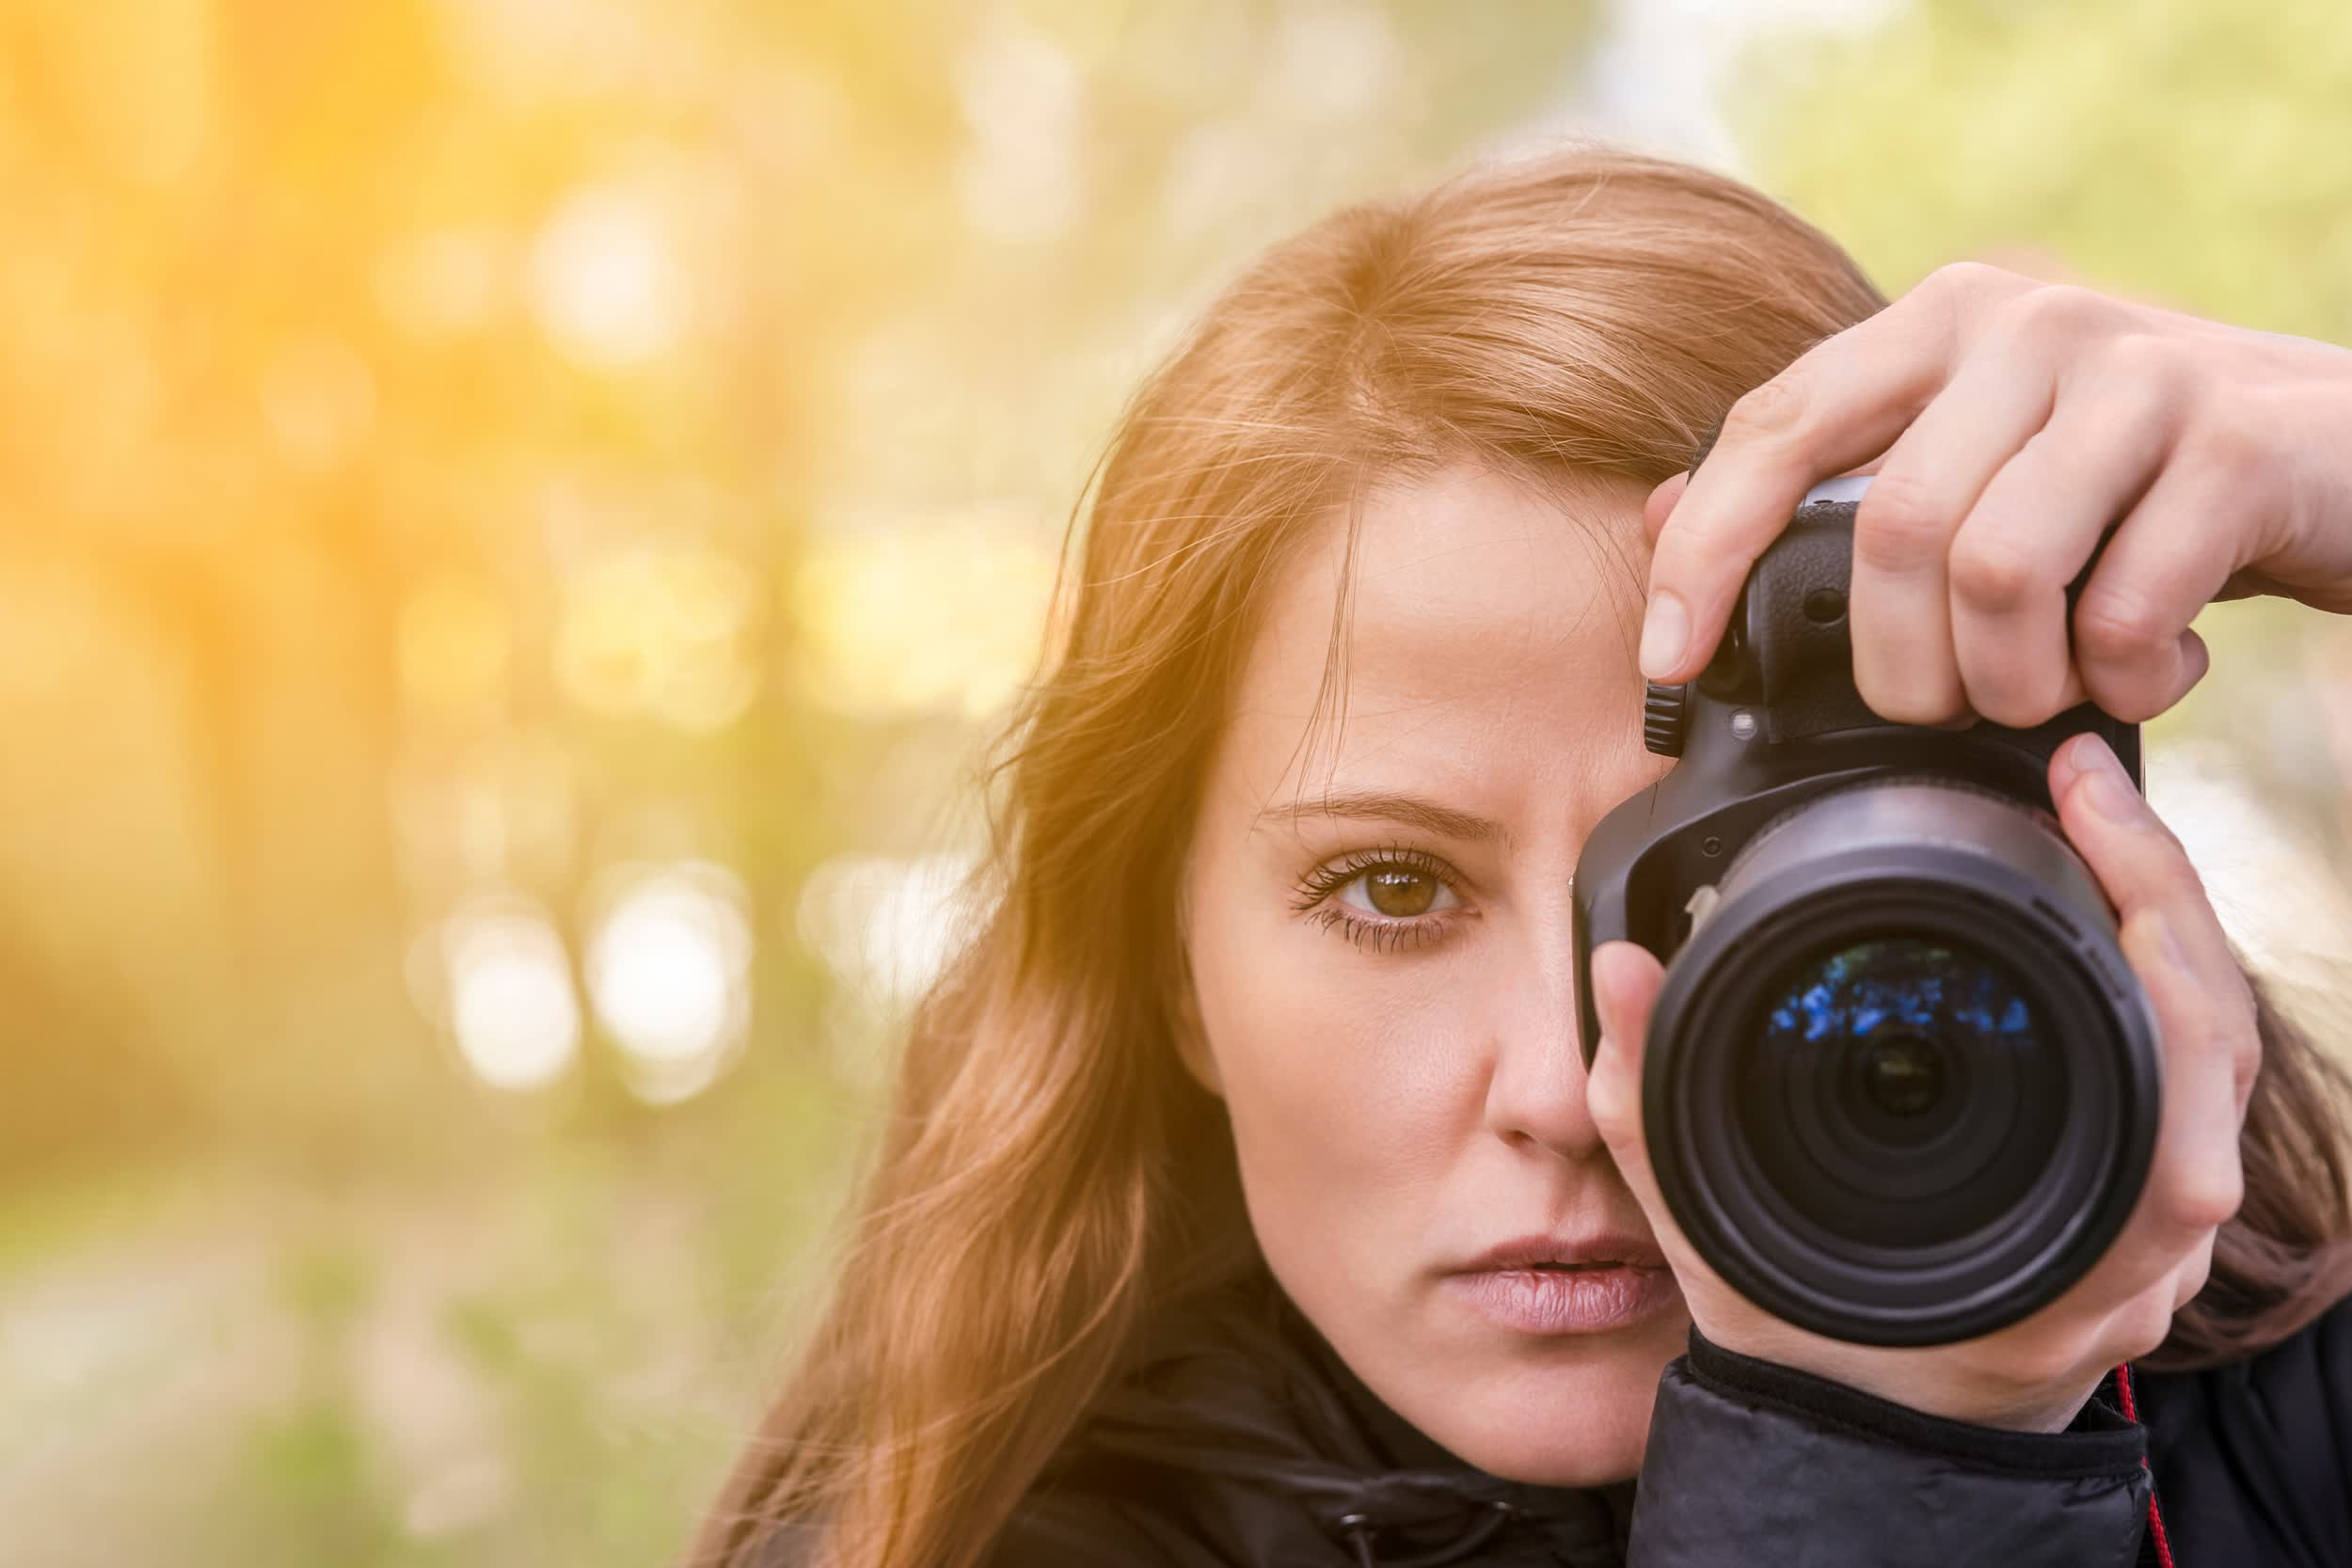 Nikon is offering free online photography classes through the end of the year